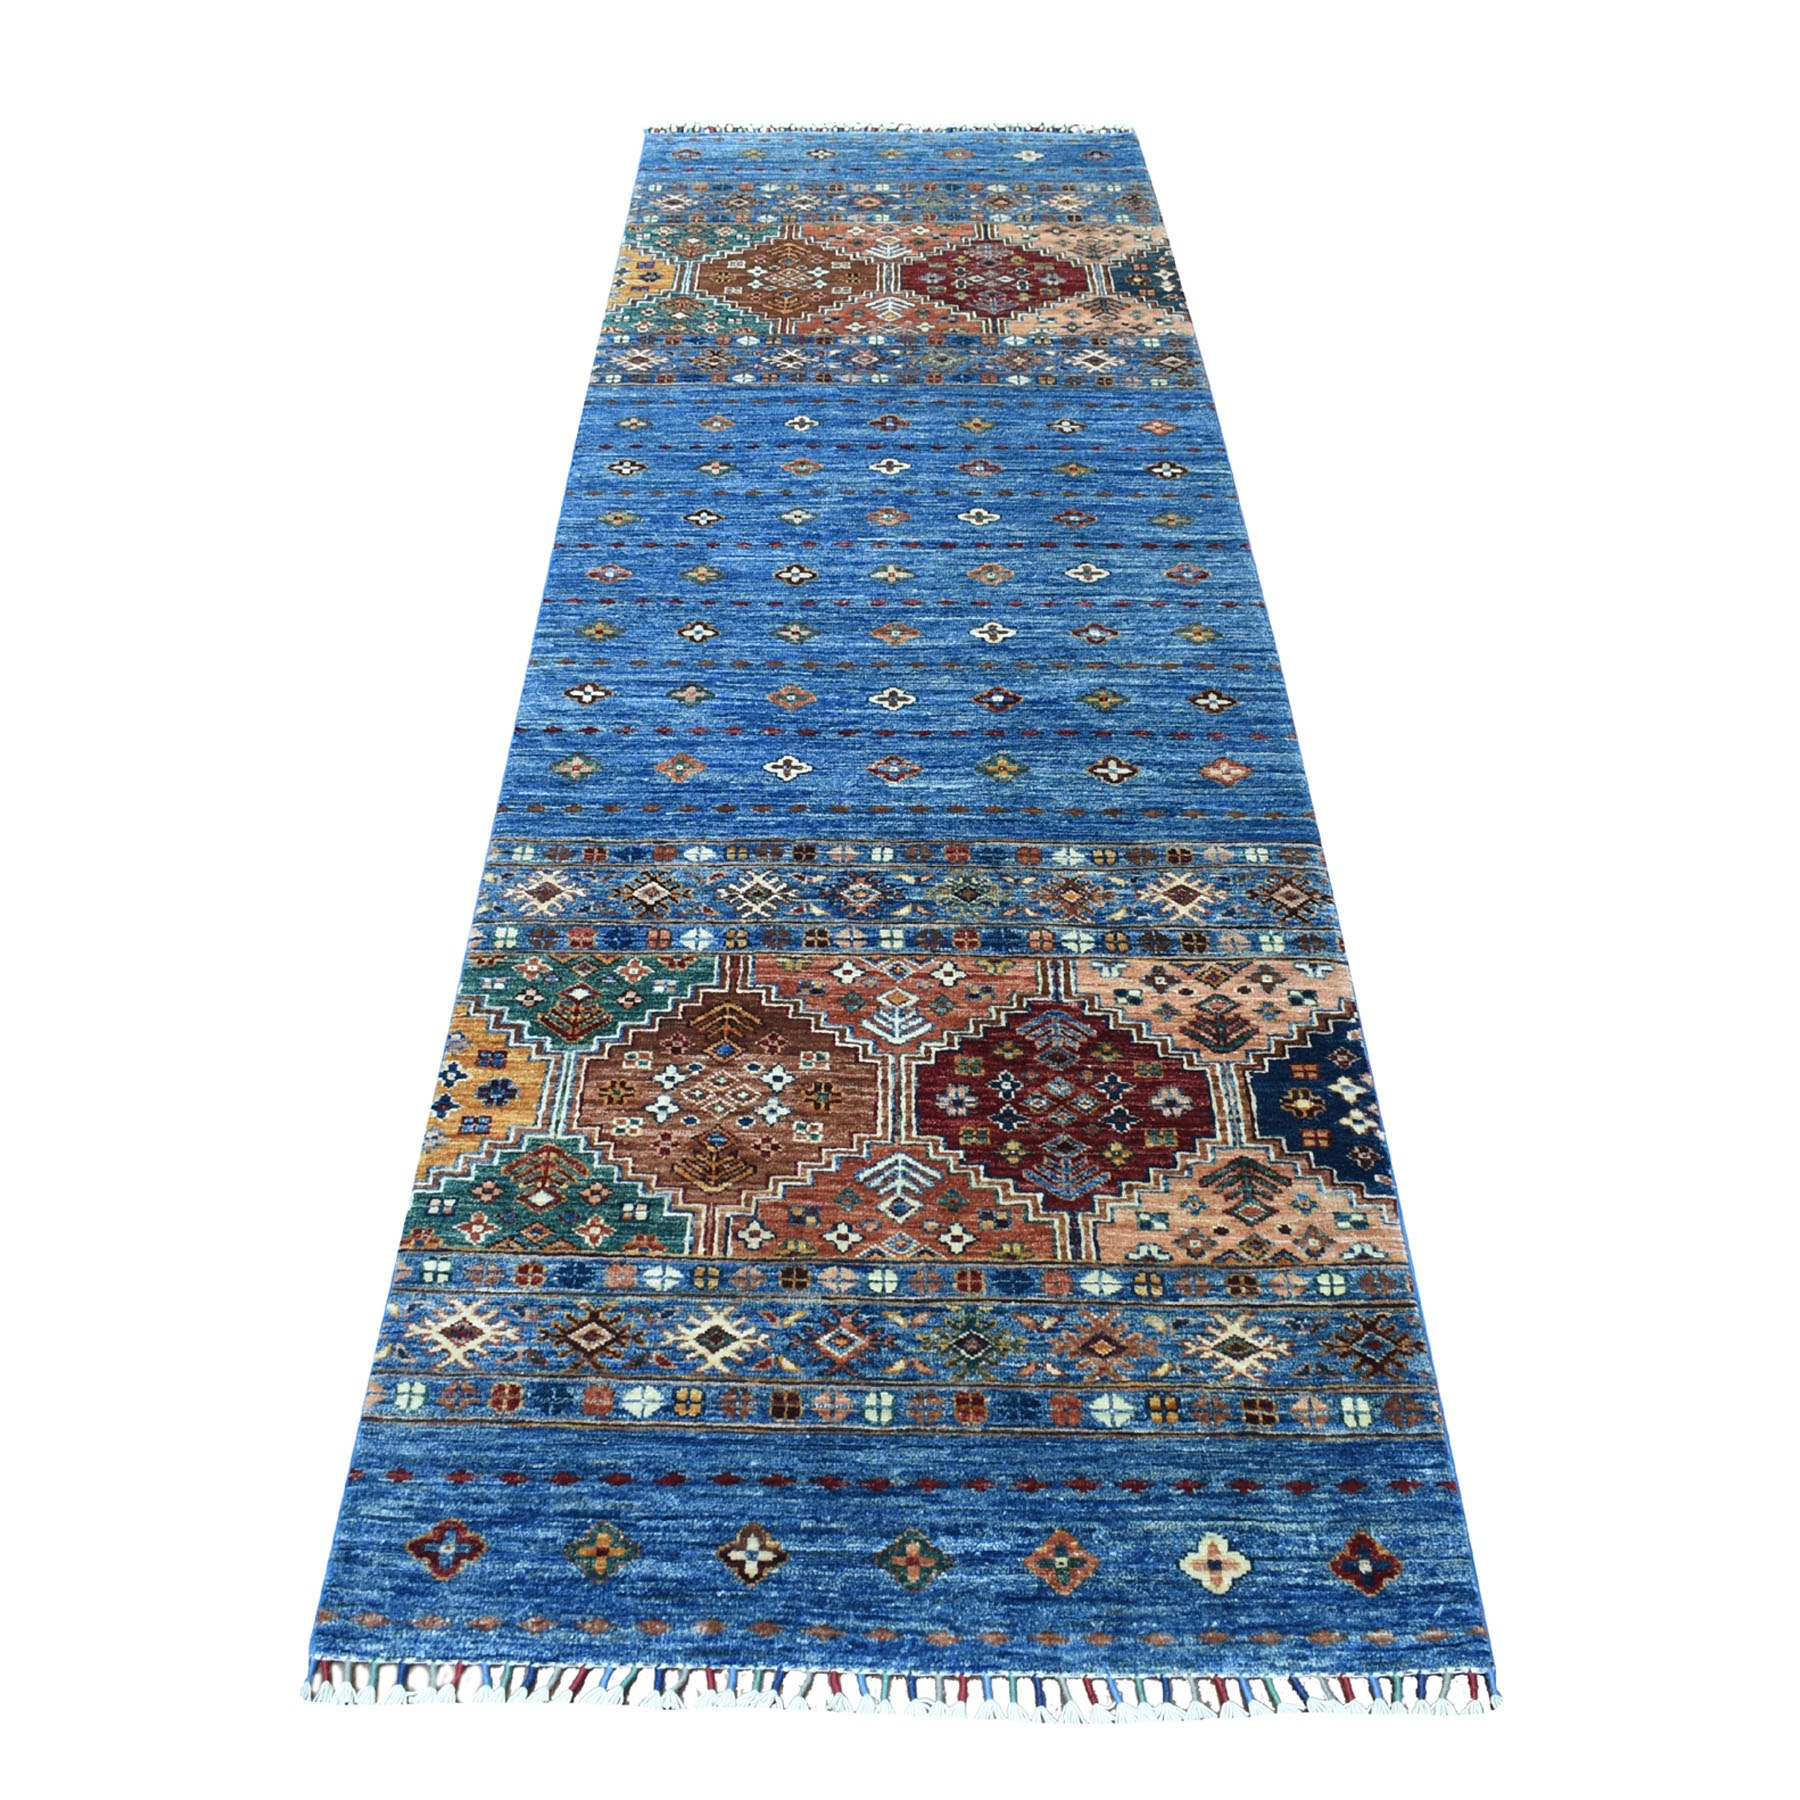 "3'x9'2"" Blue Super Kazak With Pop Of Color Khorjin Design With Colorful Tassels Hand Knotted Pure Wool Oriental Runner Rug"